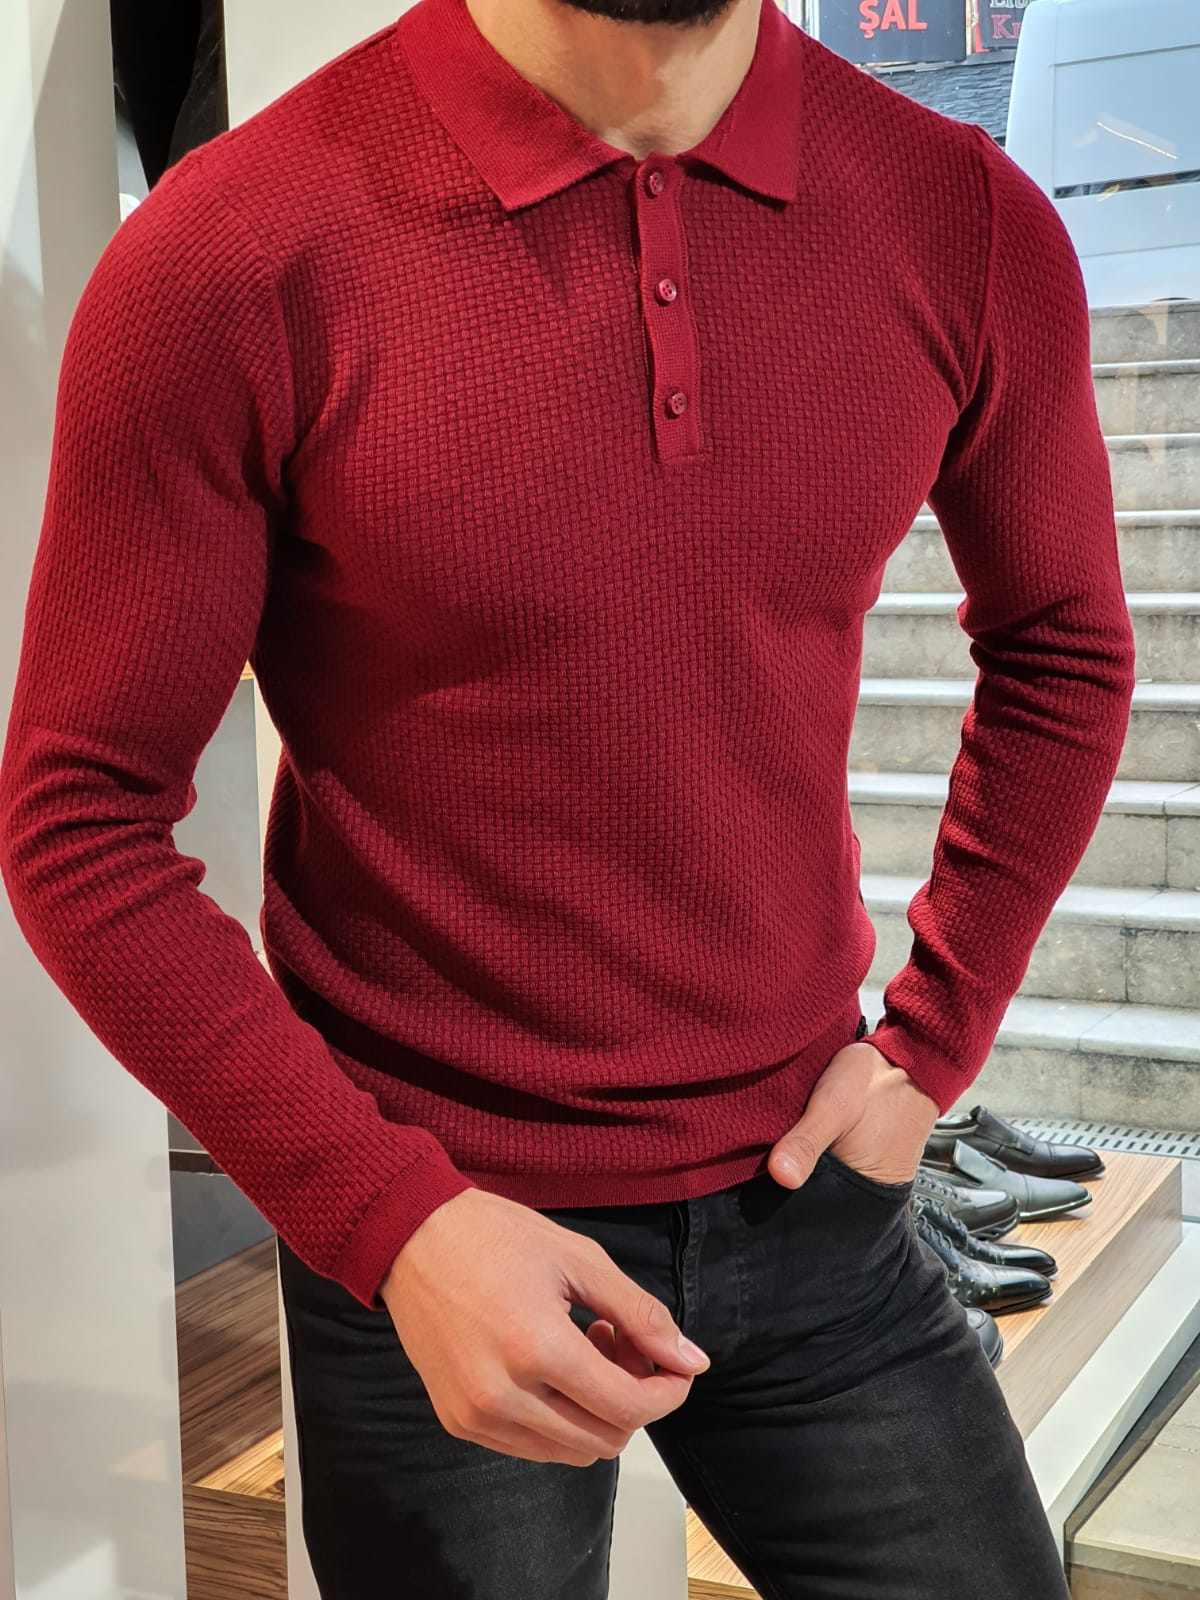 Slim-Fit polo collar knitwear sweater Claret-red